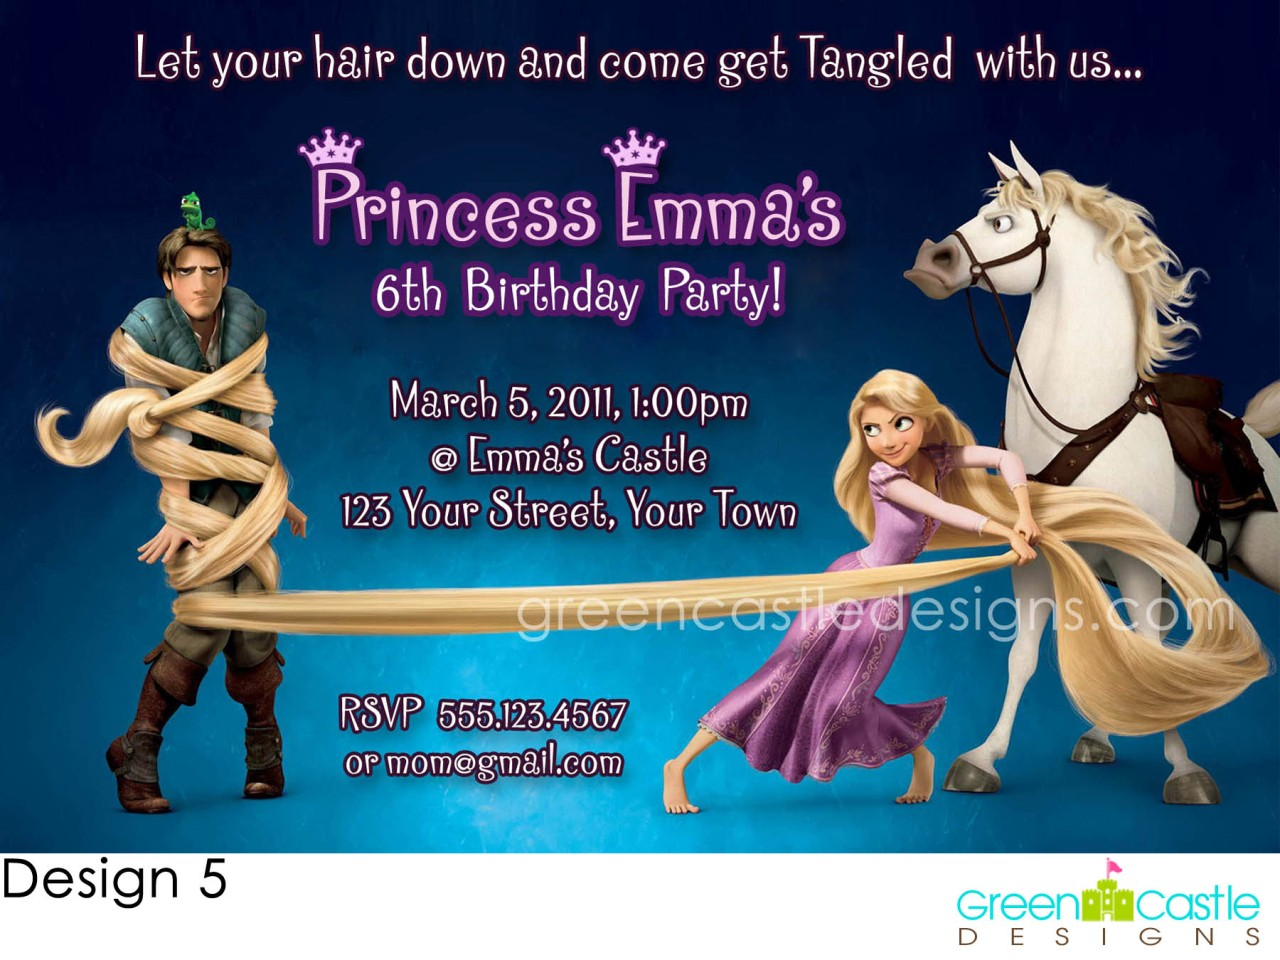 Tangled Templates http://www.ebay.com/itm/Tangled-Invitations-Birthday-Party-Rapunzel-Custom-Invite-Printable-/290619466100